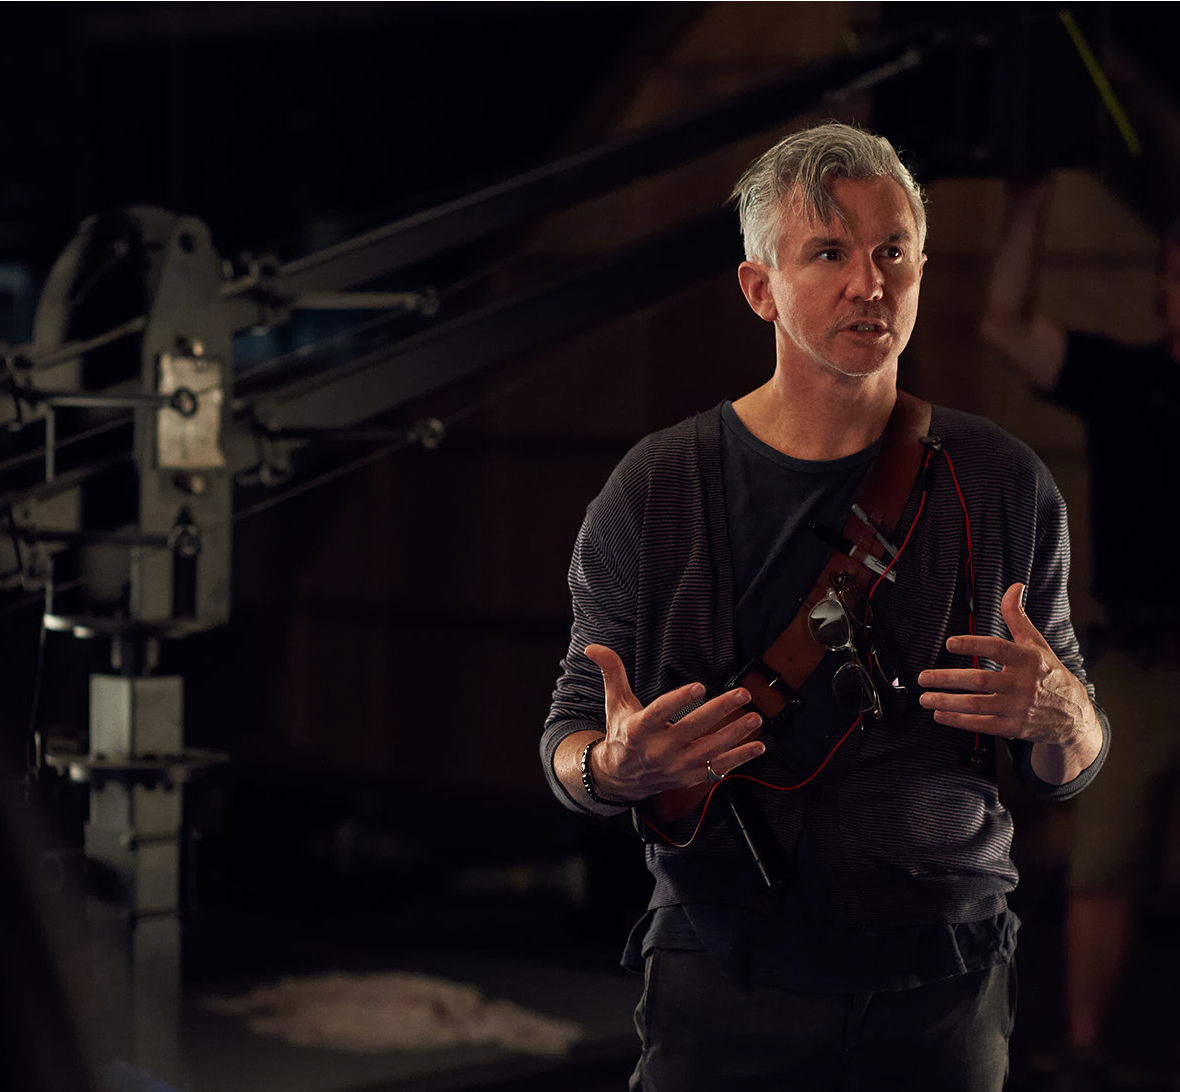 BREAKING NEWS: Baz Luhrmann has signed a rich two-year deal with Sony Pictures TV to develop broadcast and cable projects through his company Bazmark Films.